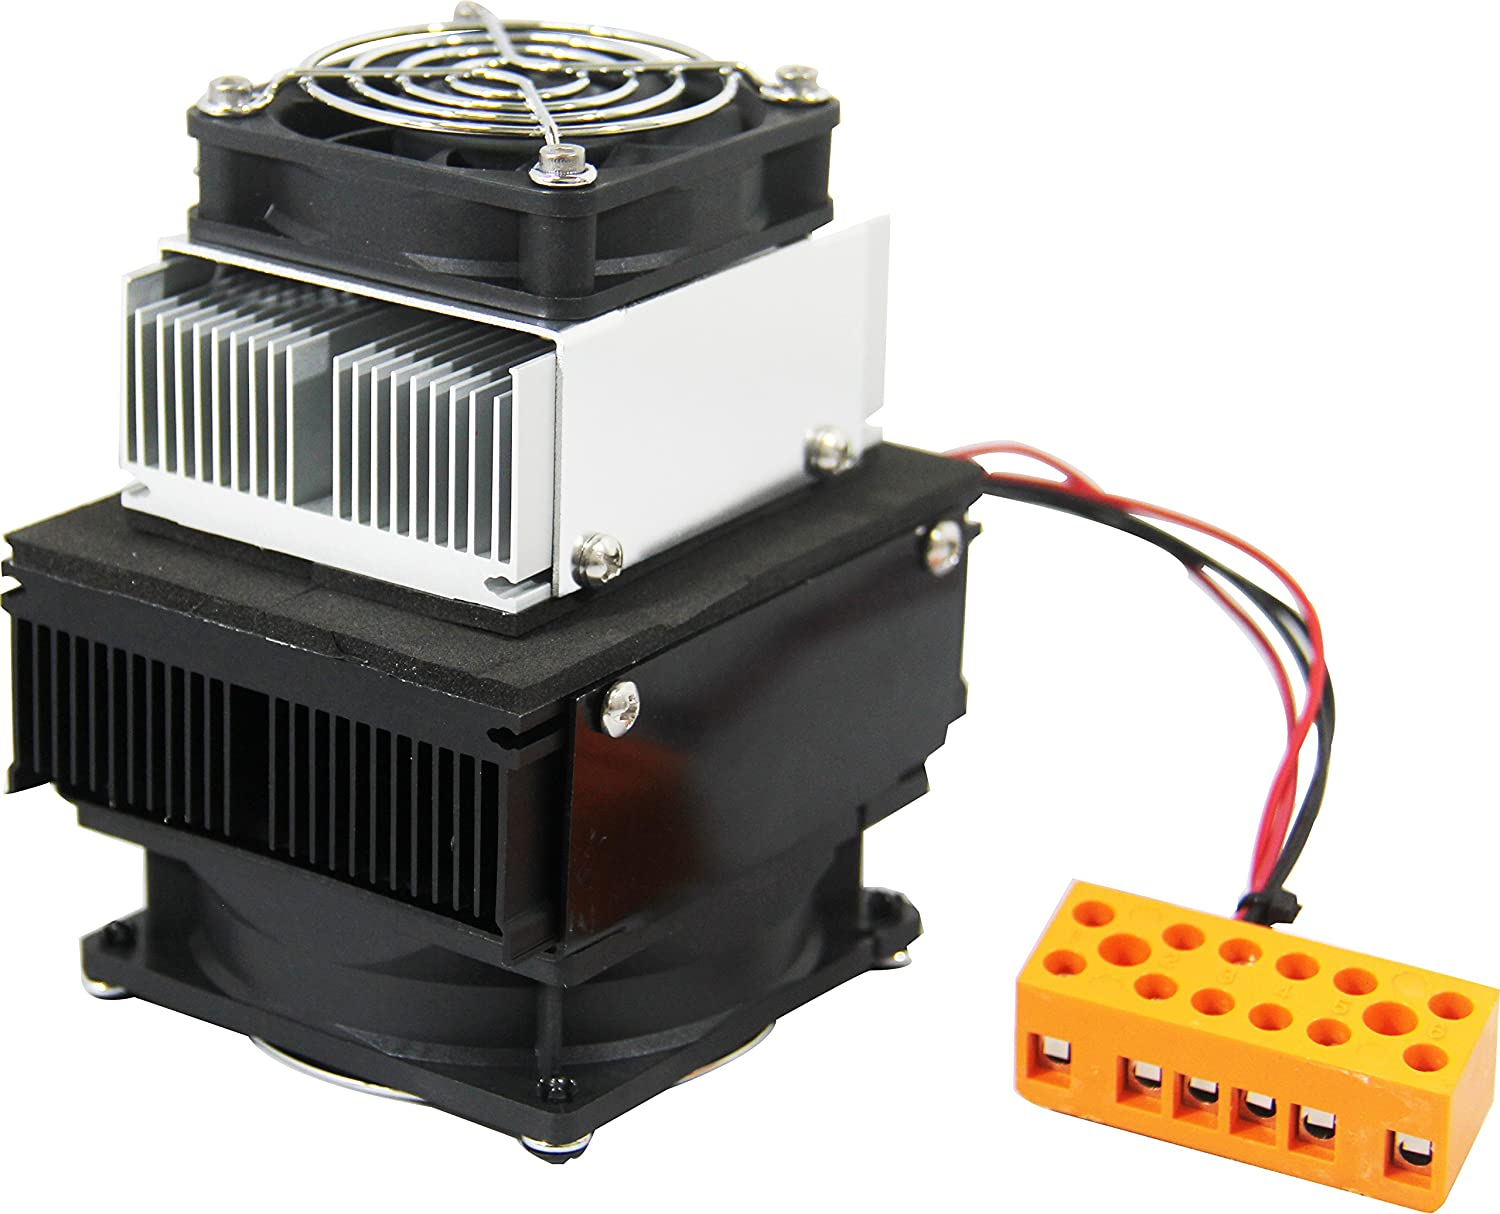 P& N TECHNOLOGY Industrial Peltier 24W 12V Mini TEC Cooler With IP55 Protection P&N TECHNOLOGY(XIAMEN)CO. LTD. AA-24-12